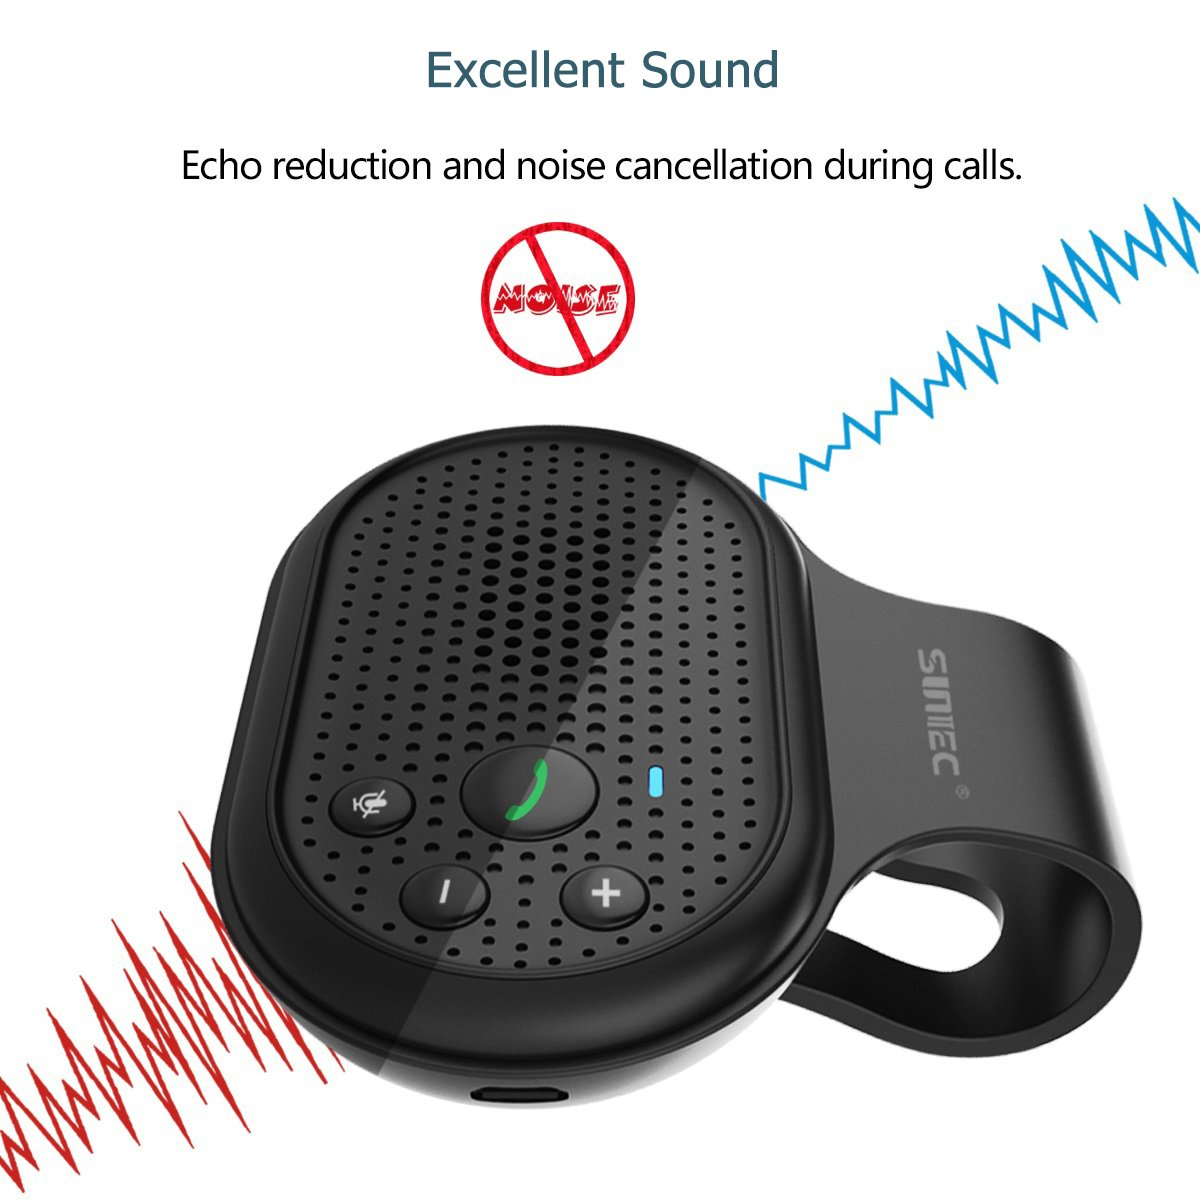 Bluetooth Hands Free Car Speakerphone, SUNITEC Bluetooth Visor Car Kit In-Car Phone Speaker AUTO POWER ON Support GPS, Music and HandsFree Calling for iphone, Samsung and Smartphones [2 Year Warranty] by Sunitec (Image #7)